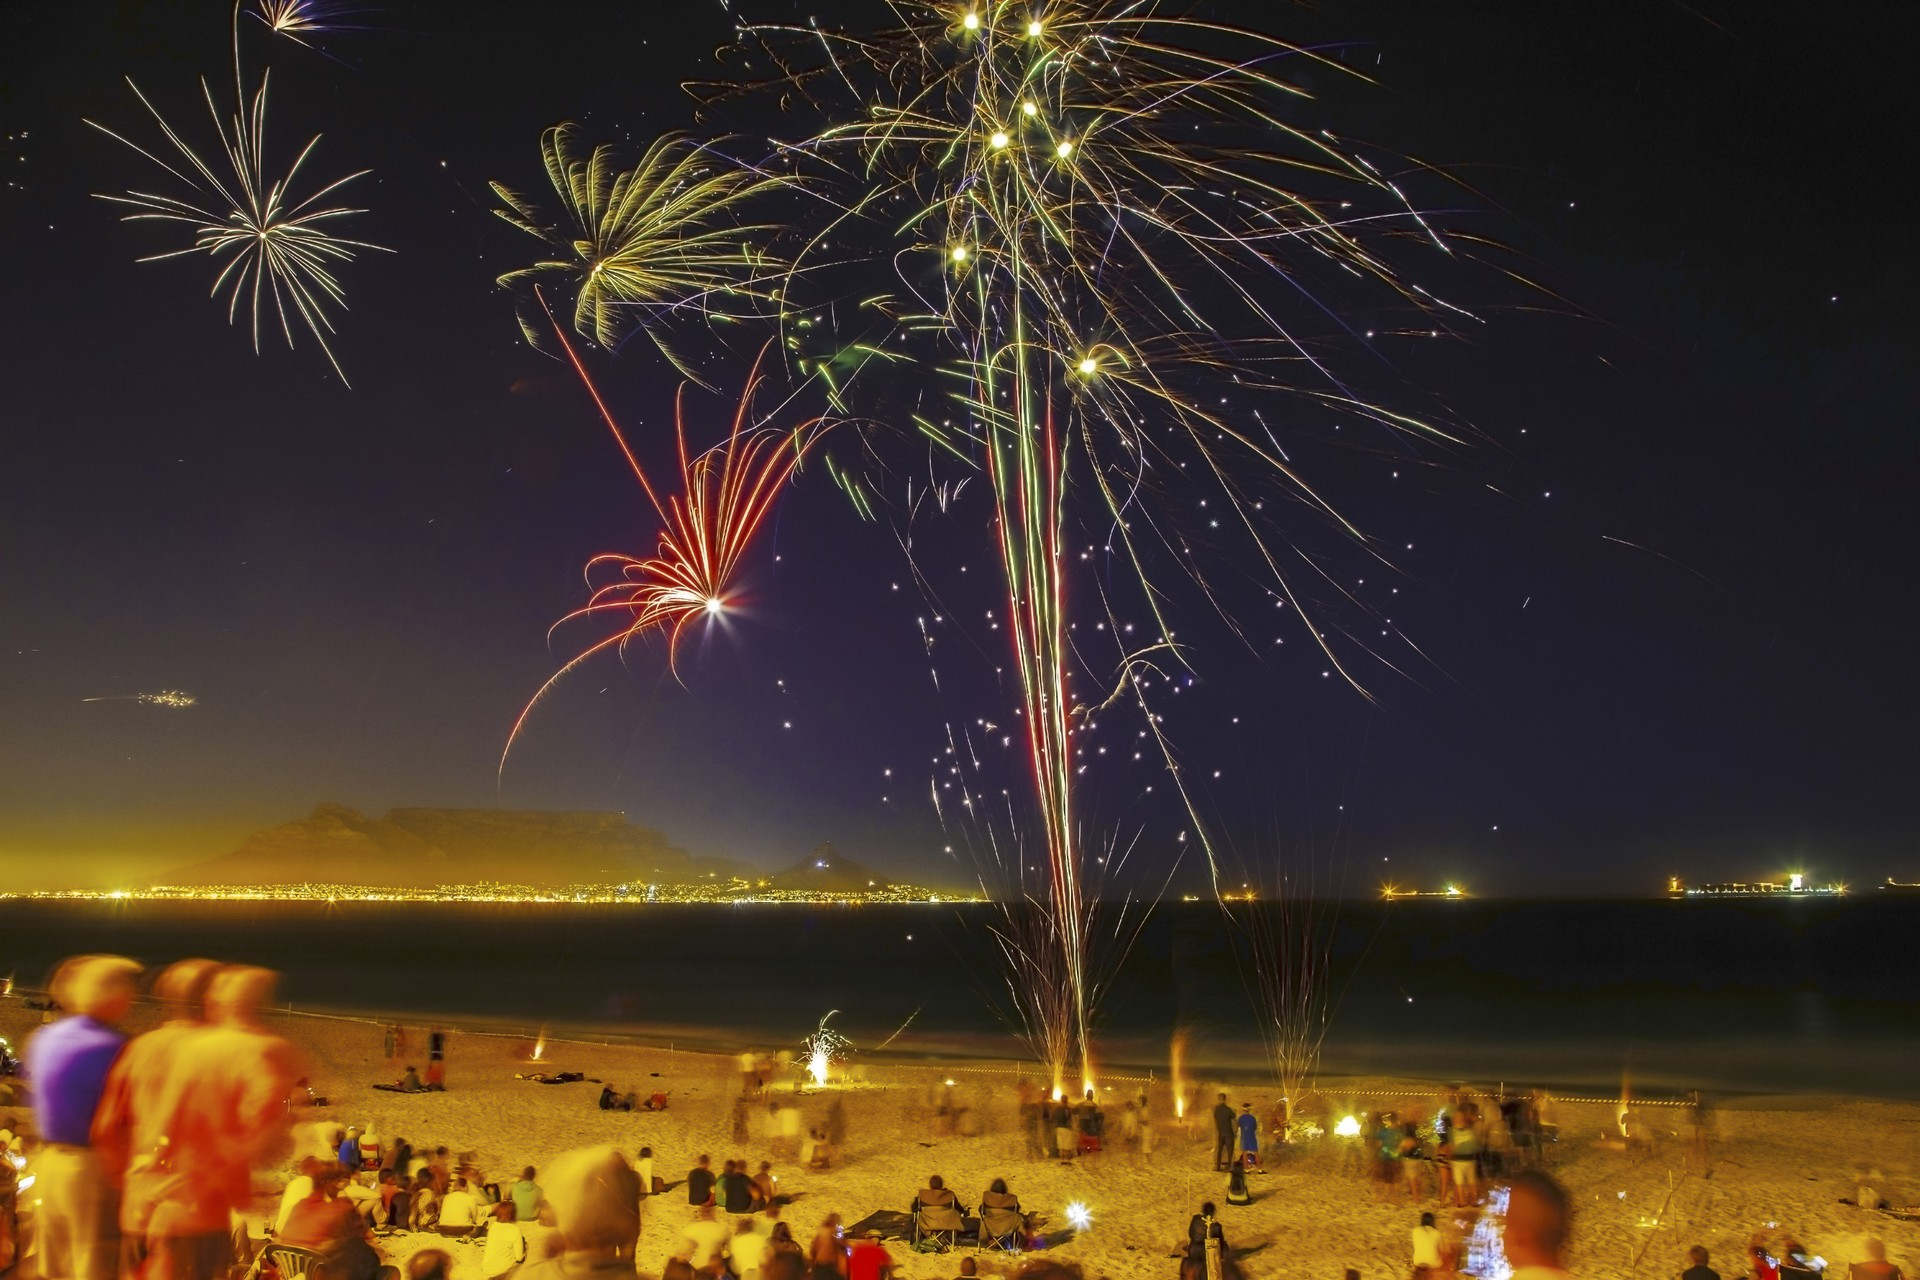 New Year fireworks on a beach by Cape Town